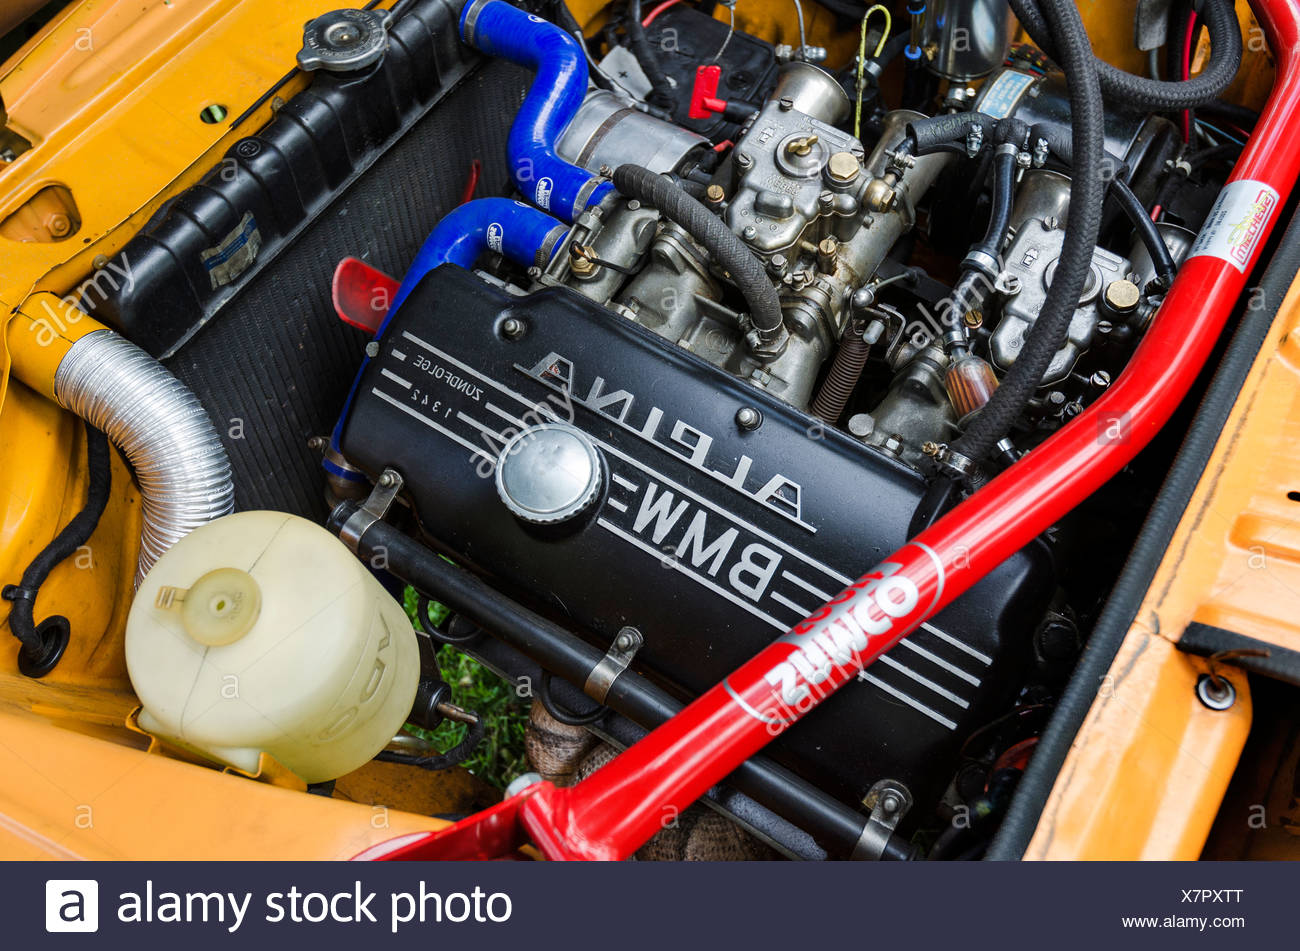 Bmw 2002 Tii Race Car >> Bmw Alpina Stock Photos & Bmw Alpina Stock Images - Alamy